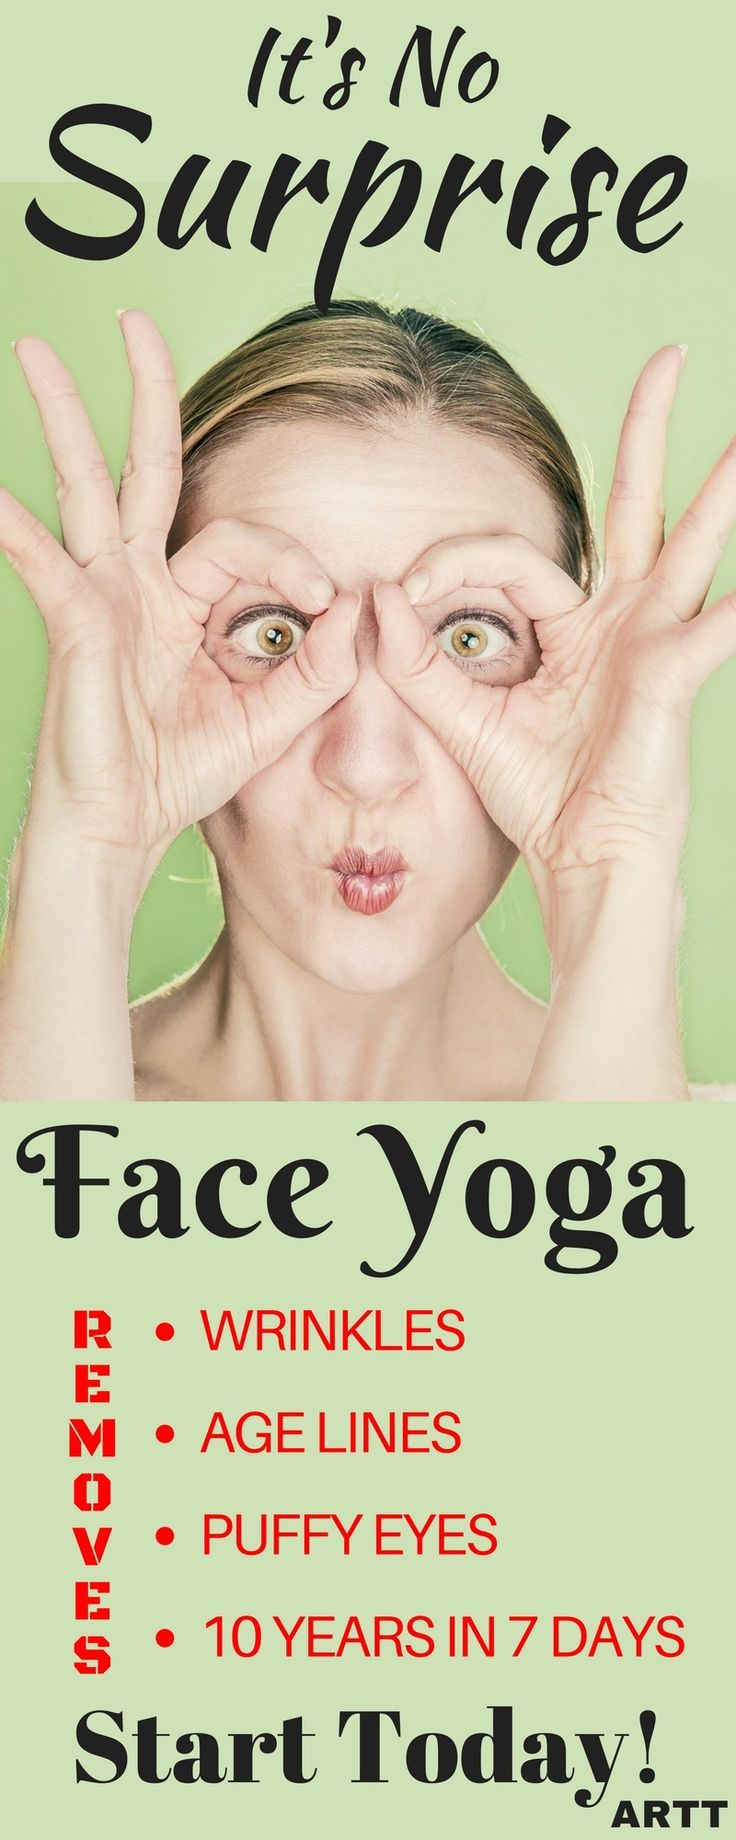 A happy face makes a happy day. Your face is the first part of your body people look at when they approach you. Having this in mind, the best thing you can do is to care for your face in the best way possible way. Face Yoga | Face Yoga Method | Face Yoga Exercises | Face Yoga Anti Aging | Face Yoga Anti Aging Facial Exercies | Yoga | Yoga Exercises | Yoga Beginners | Yoga Poses | Yoga Poses Beginners |Yoga Restorative